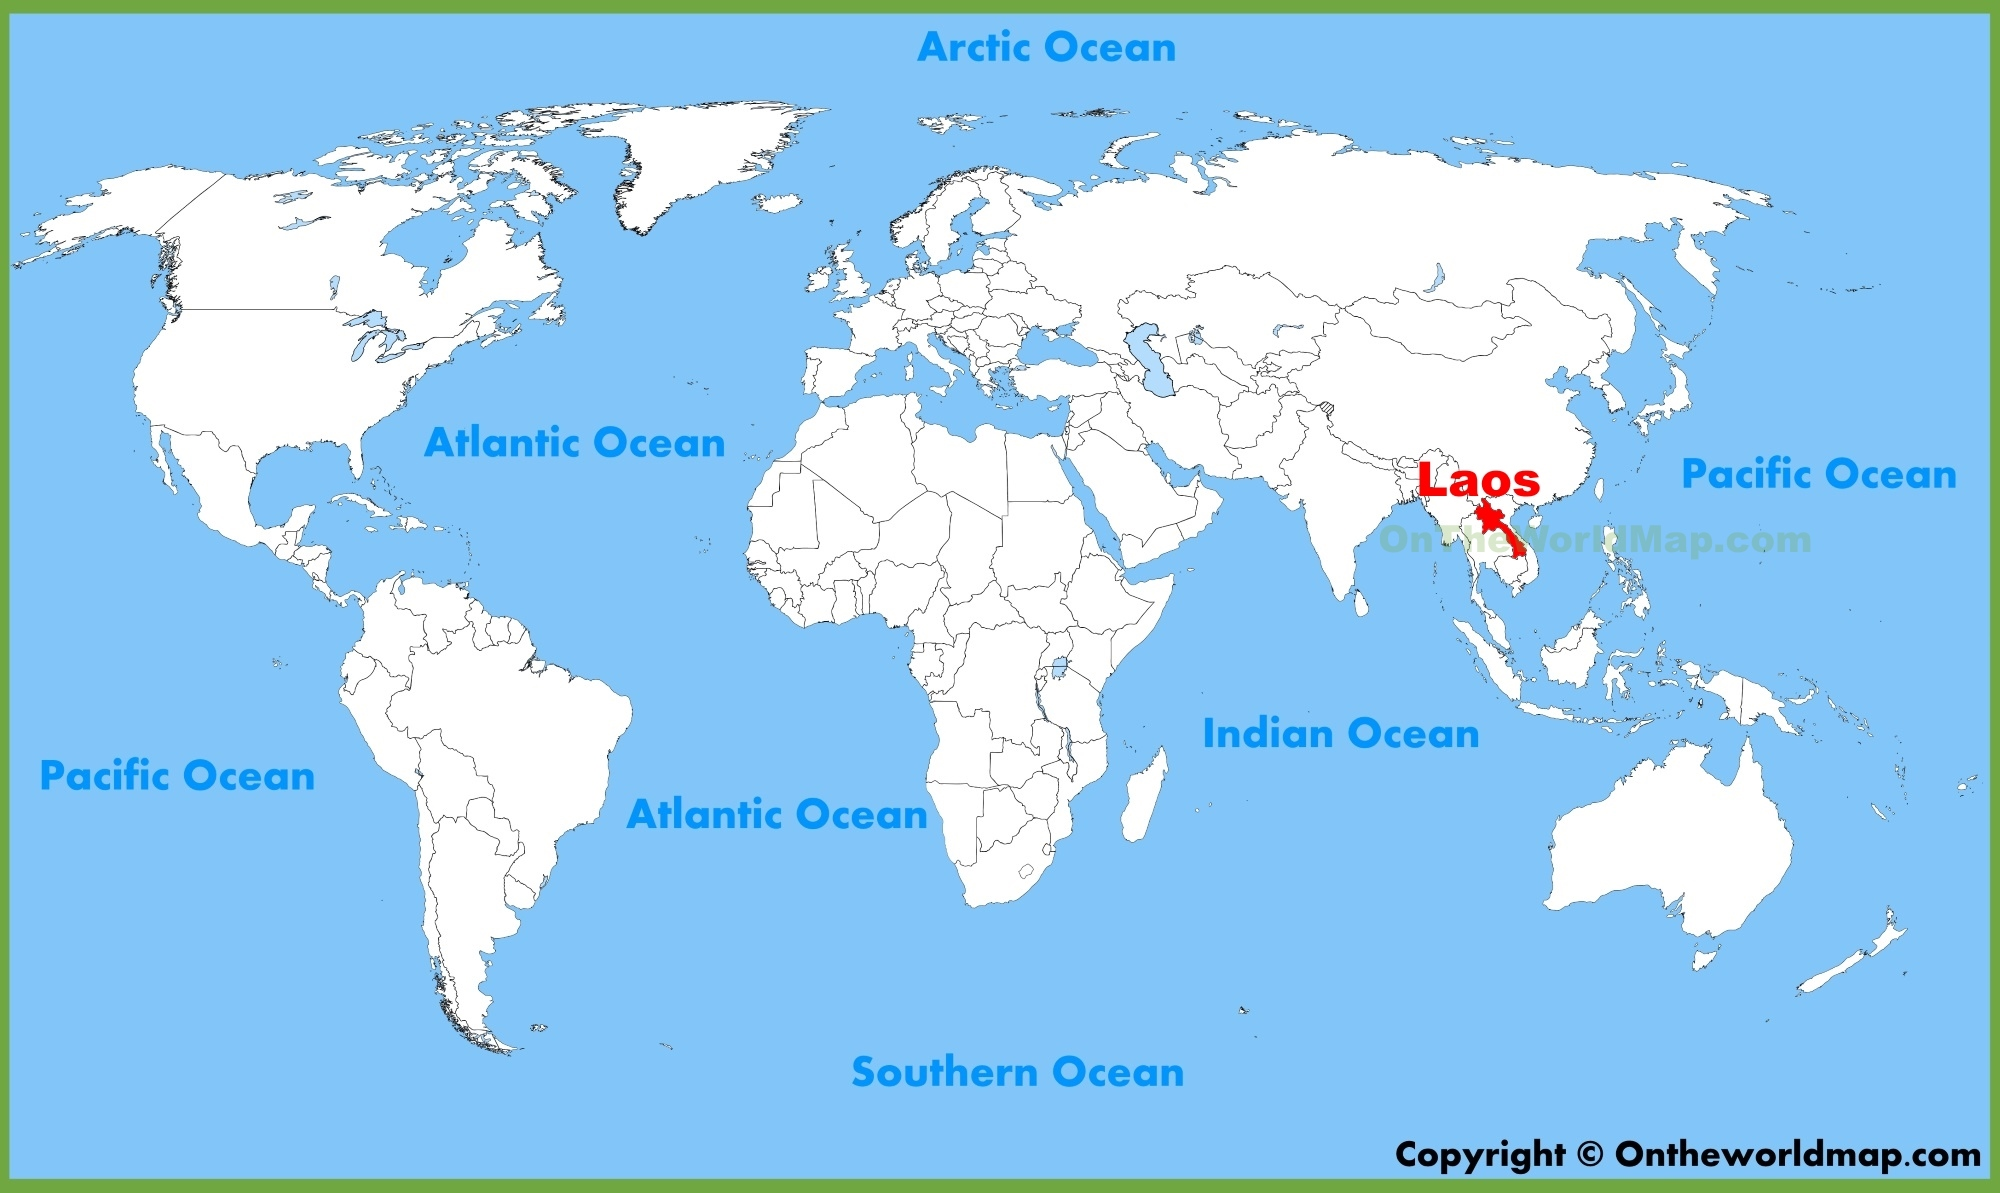 Laos location map location map of laos map of laos where is laos laos location on the world map laos on the world map gumiabroncs Image collections